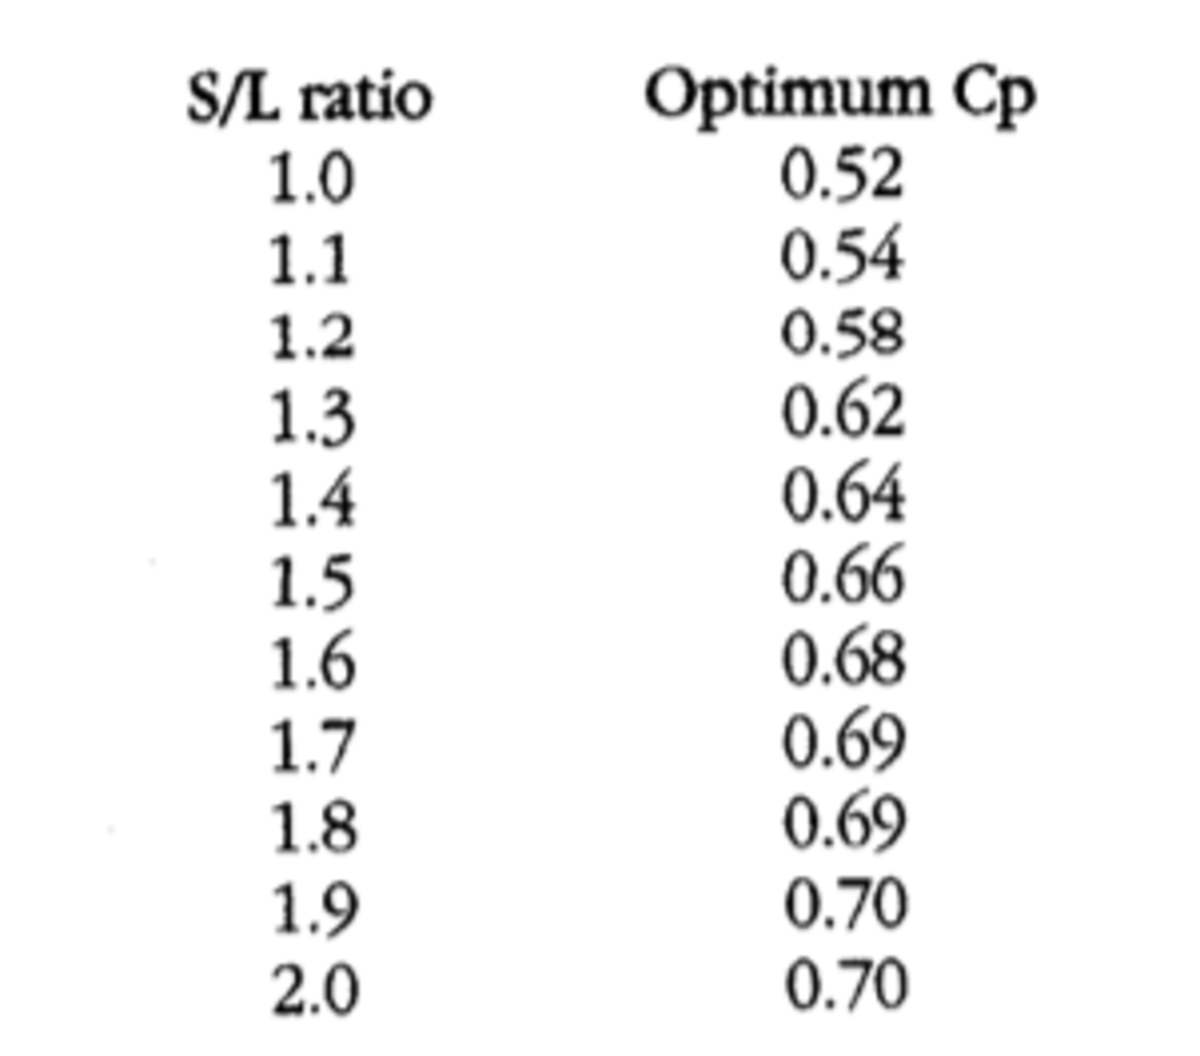 S/L ratio VS. Optimum Cb